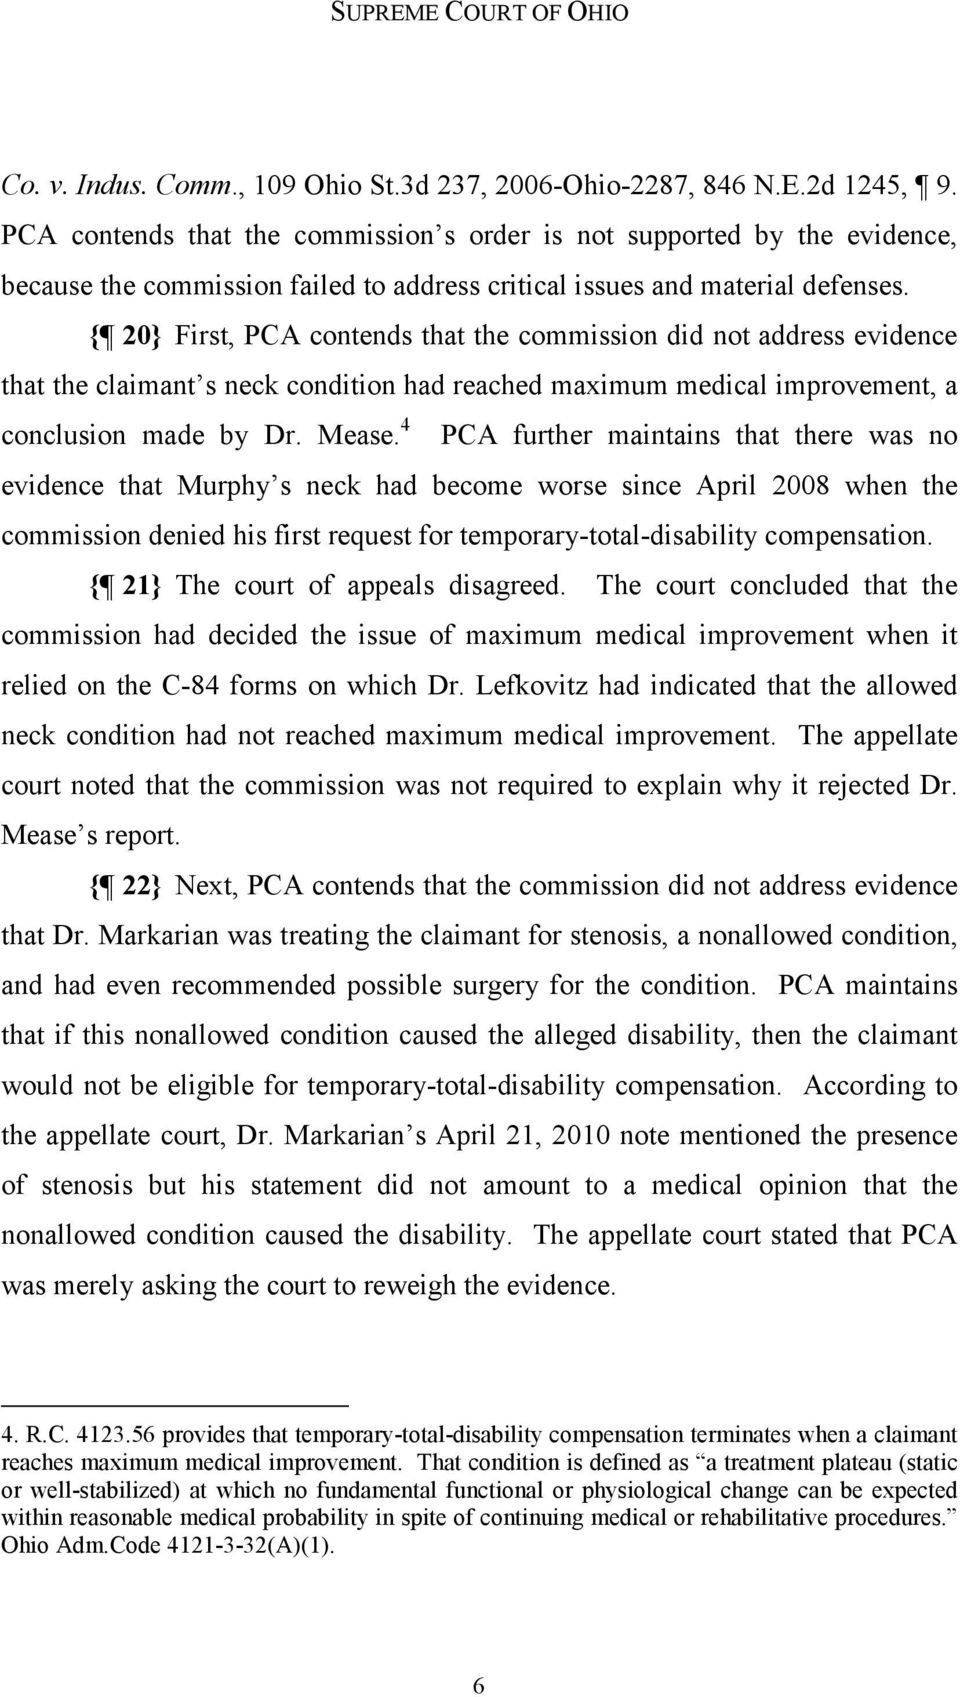 { 20} First, PCA contends that the commission did not address evidence that the claimant s neck condition had reached maximum medical improvement, a conclusion made by Dr. Mease.